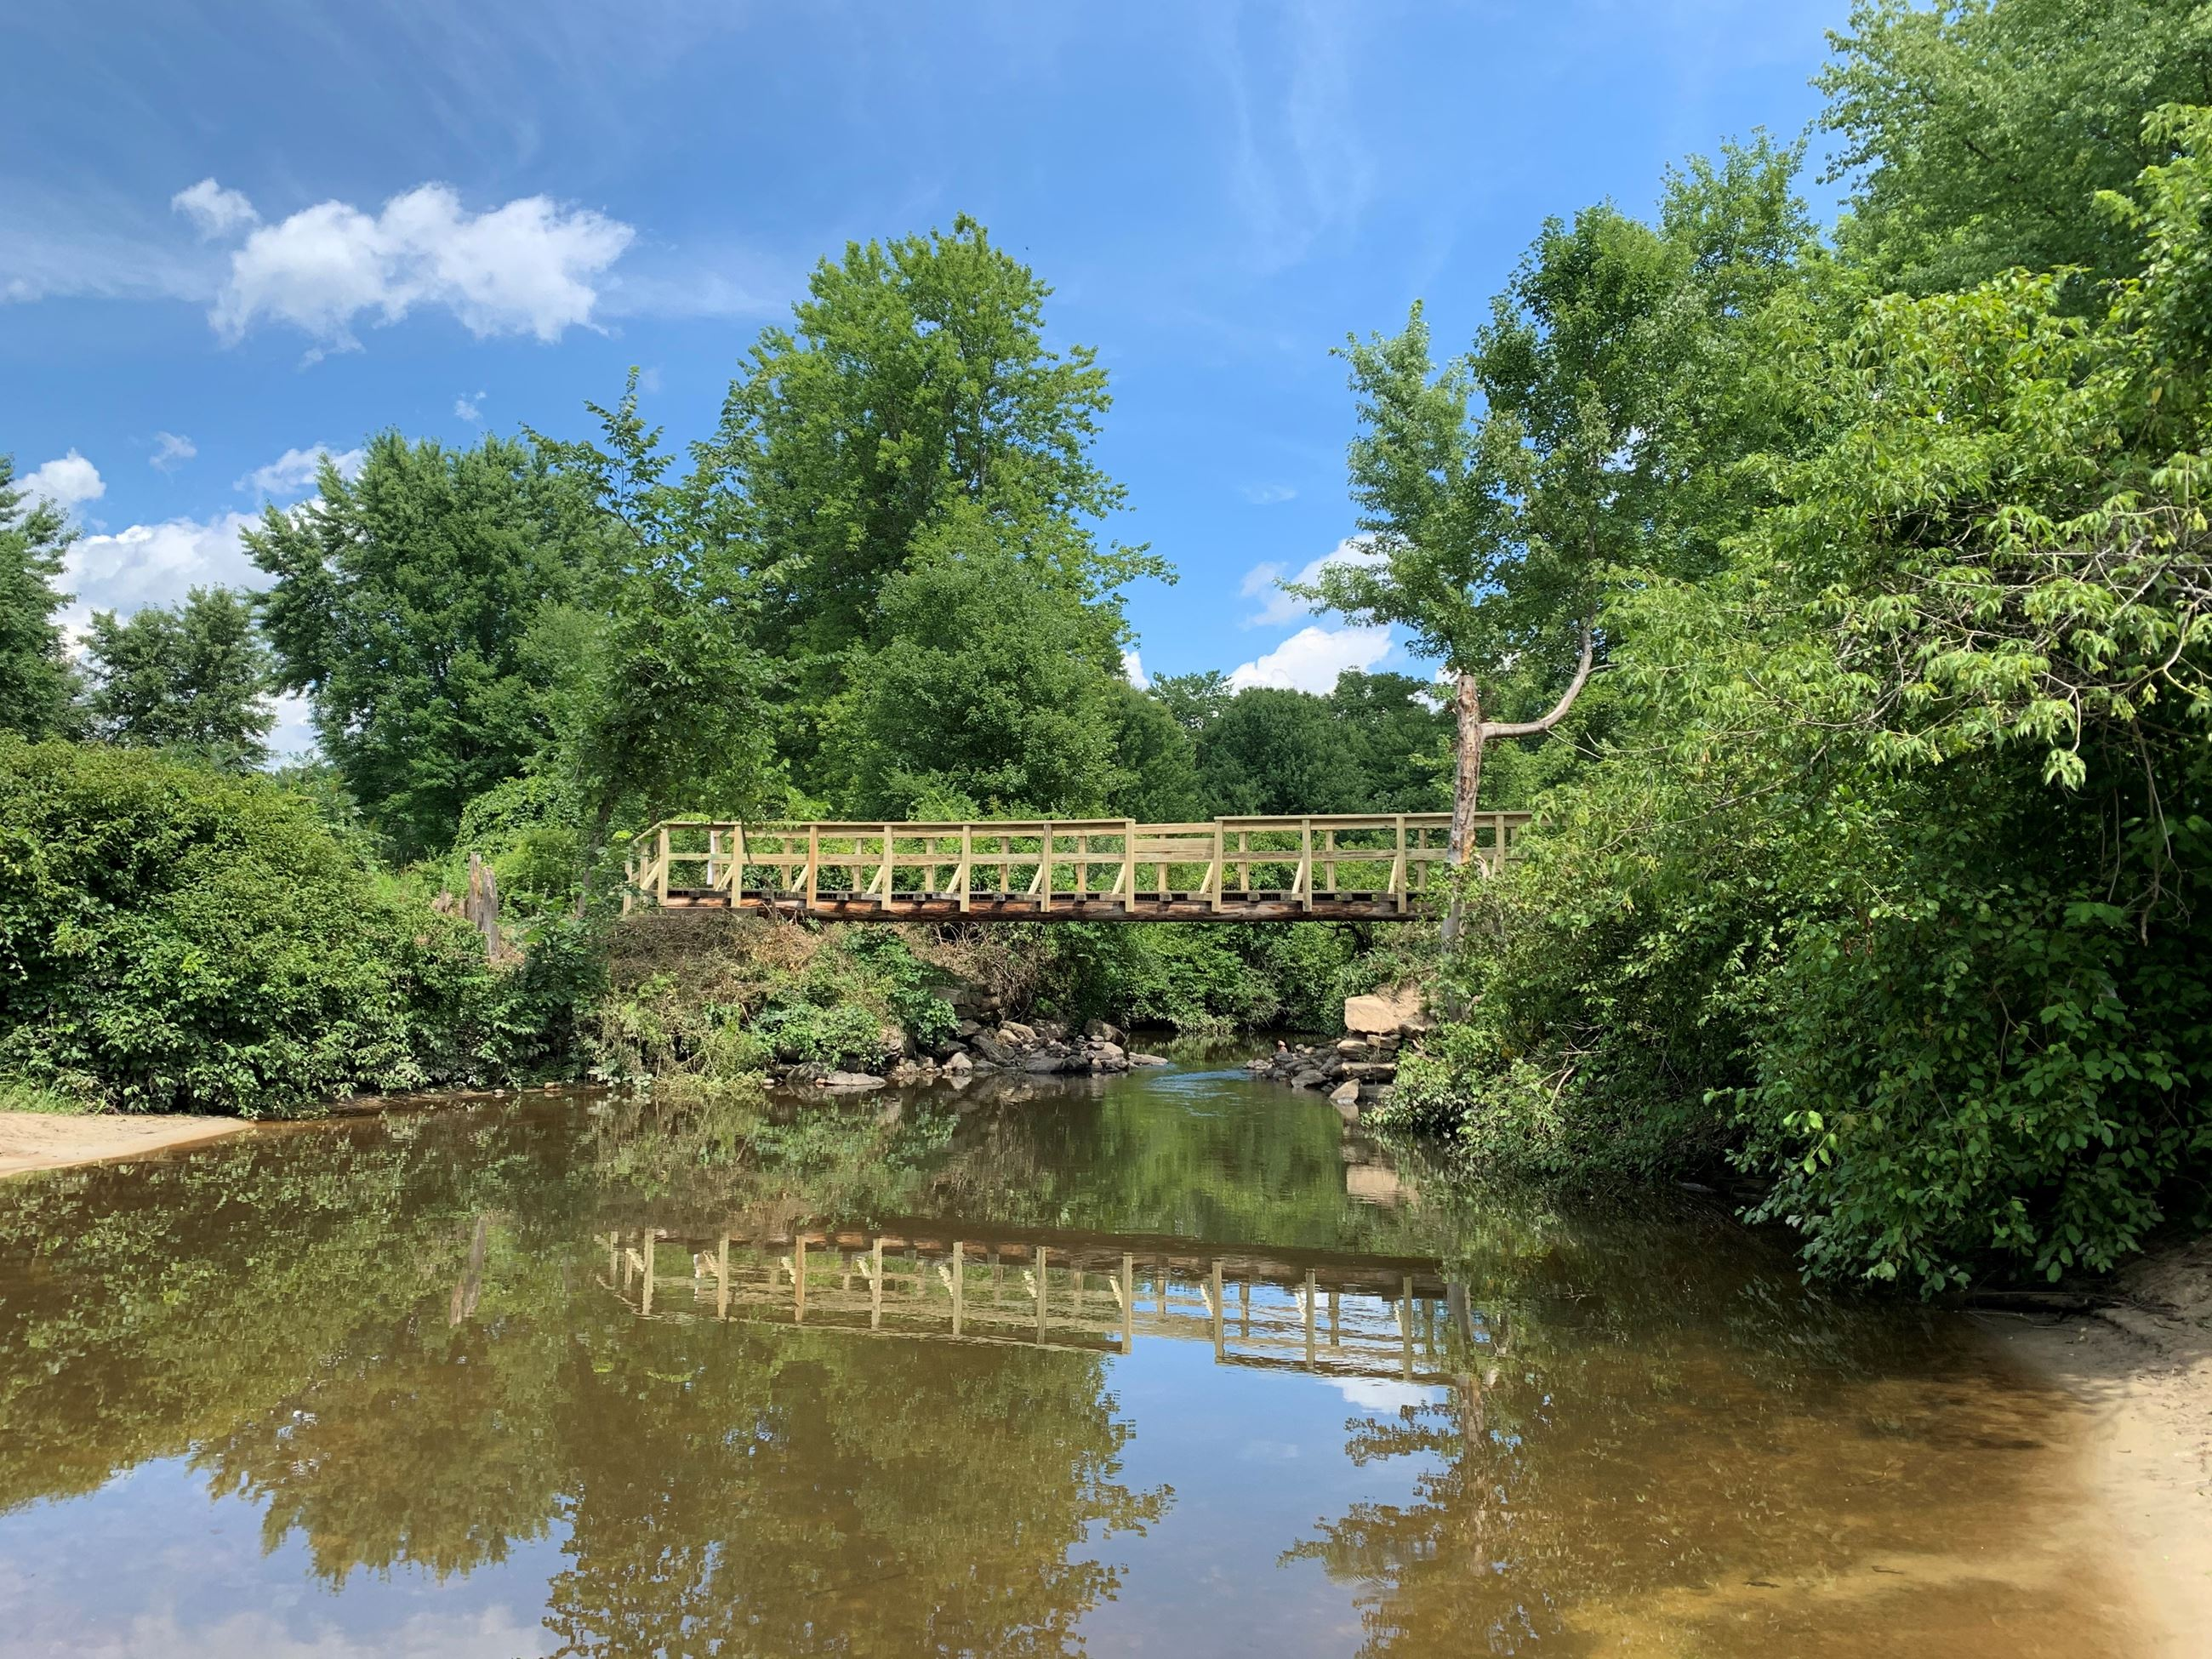 Wentworth Farm Conservation Area Bridge over Fort River